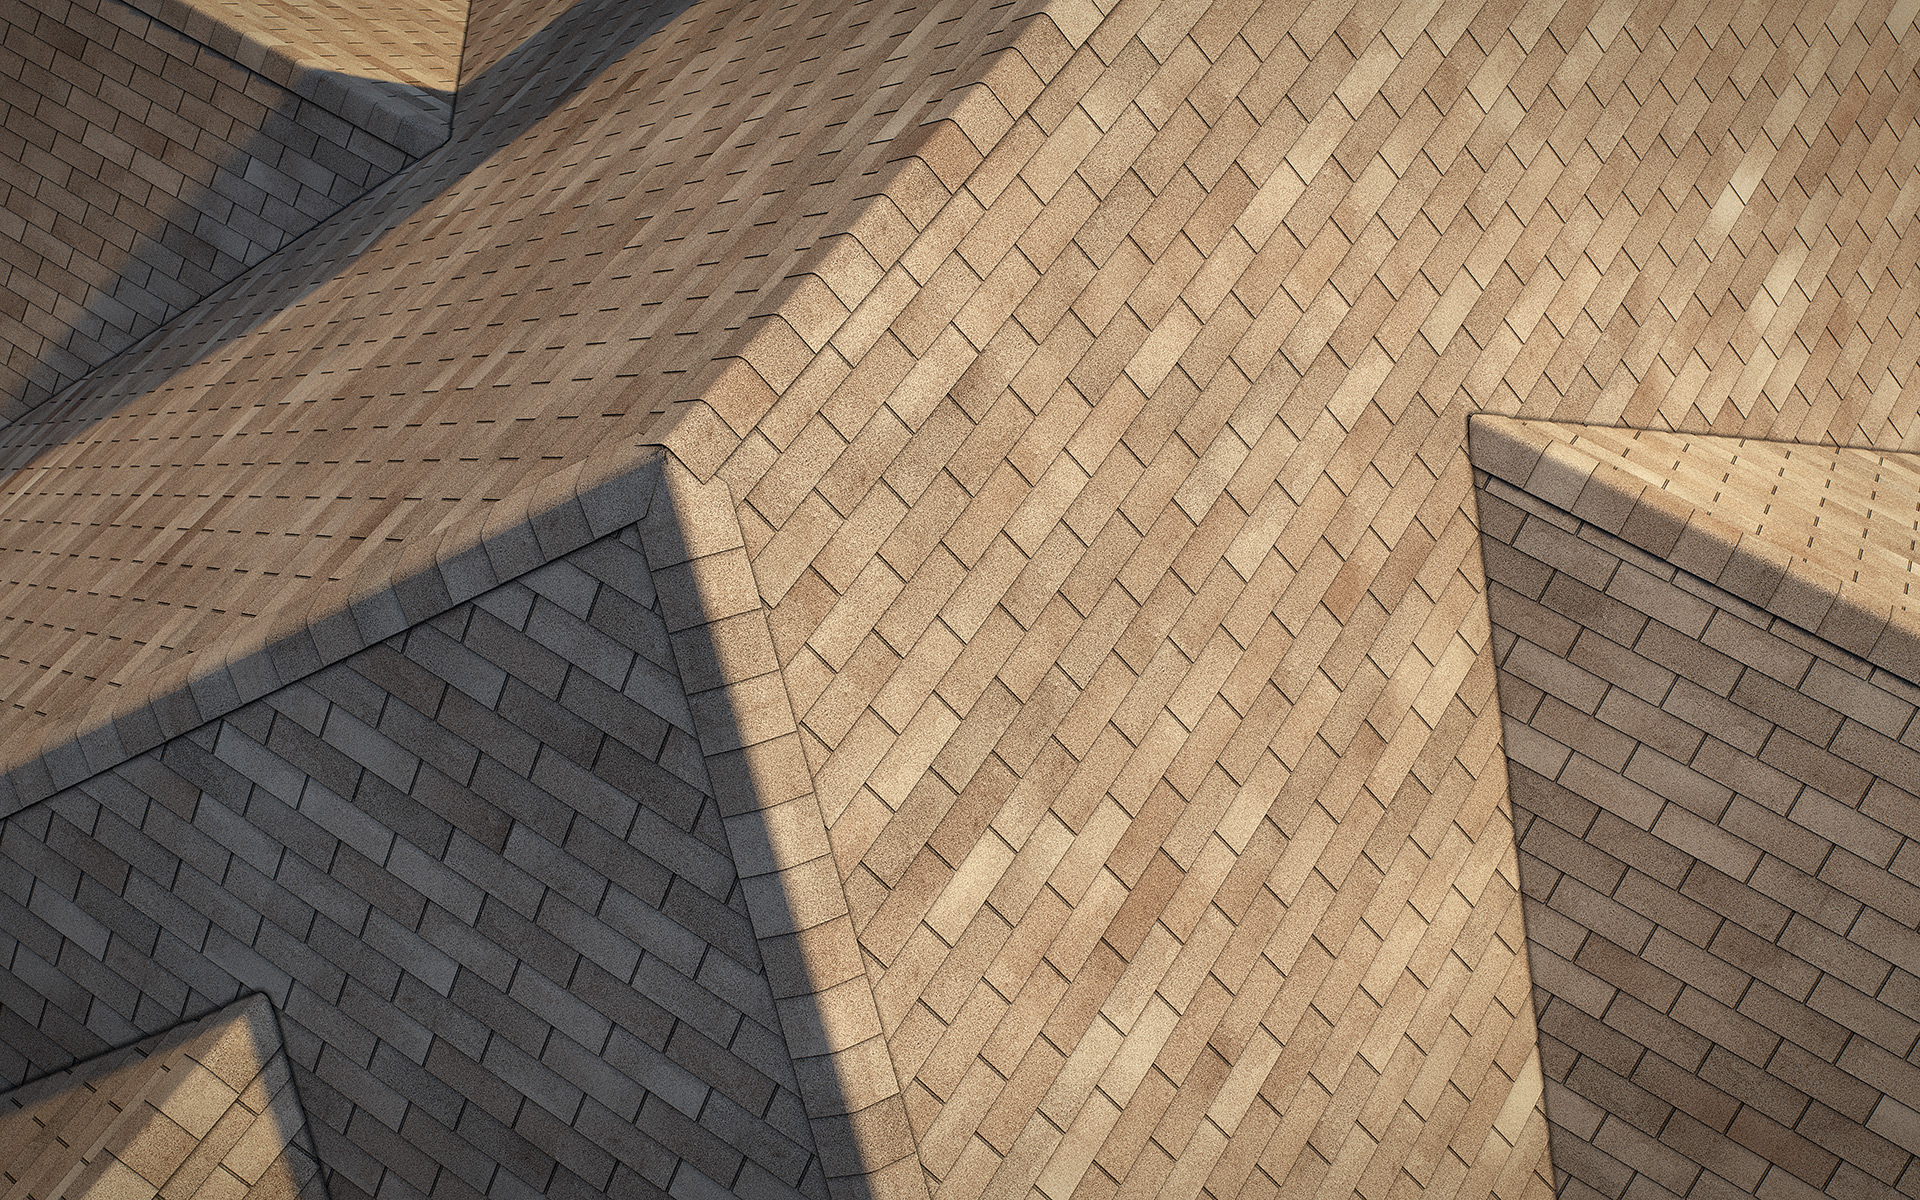 3-tab asphalt roof shingles brown color 3D model preset for 3dsmax and RailClone. Rendered with vray, made for arch-viz.